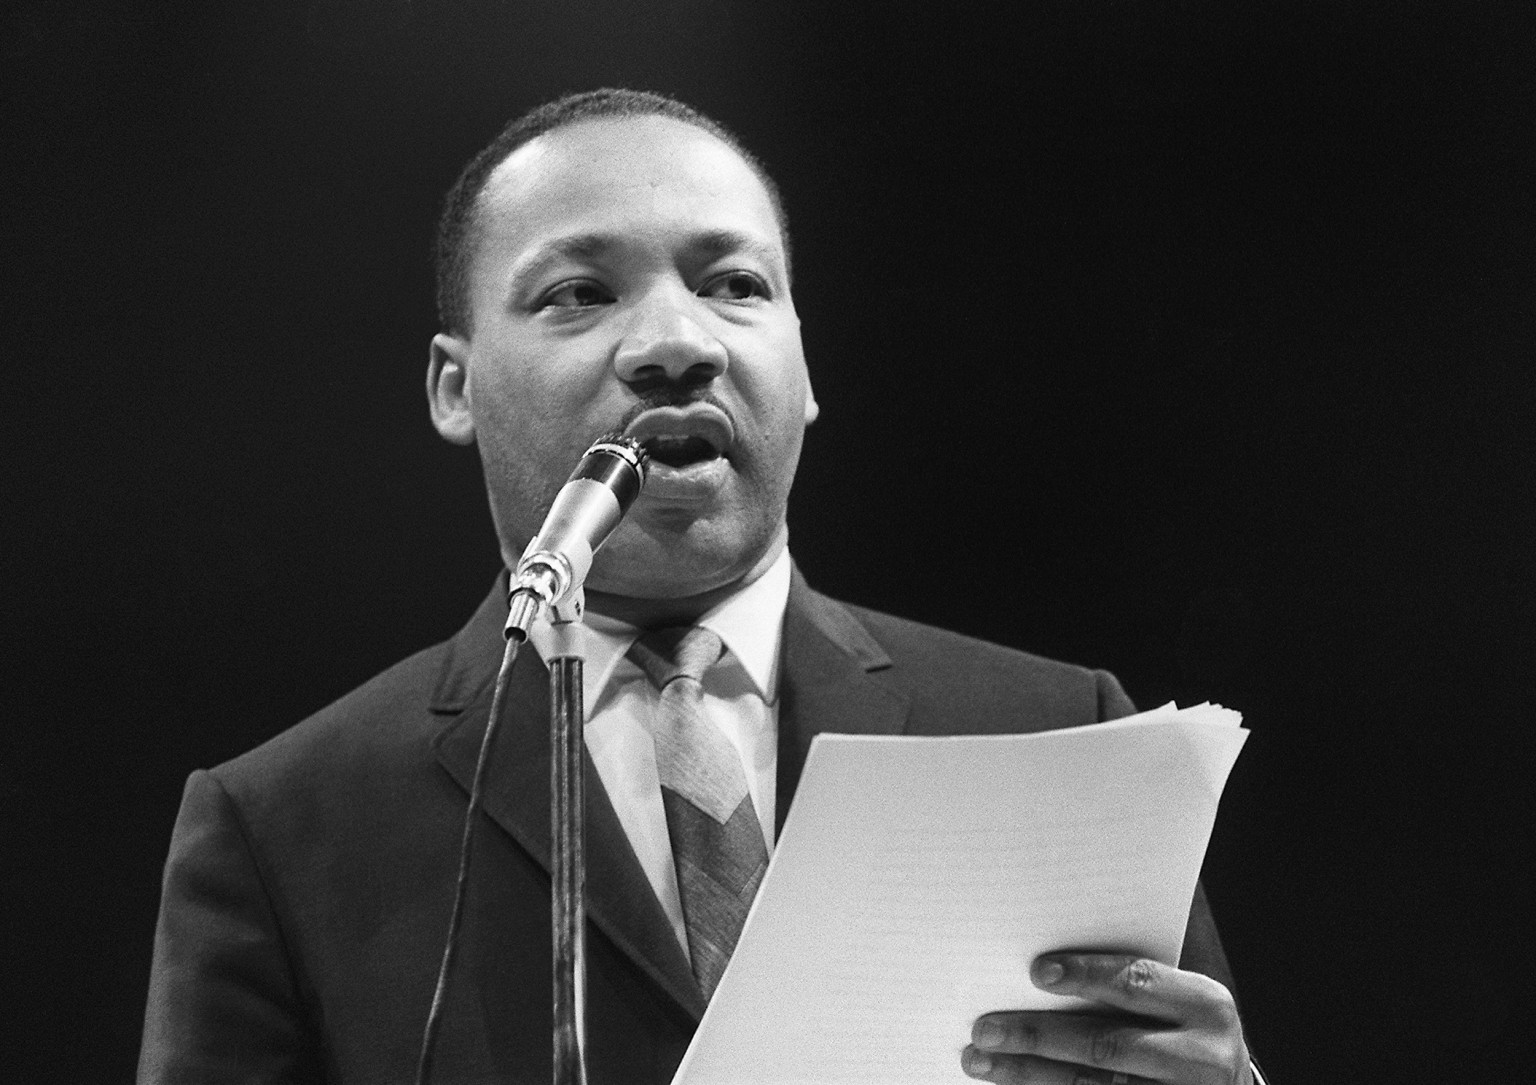 What Did King Really Mean With 'I Have A Dream?'